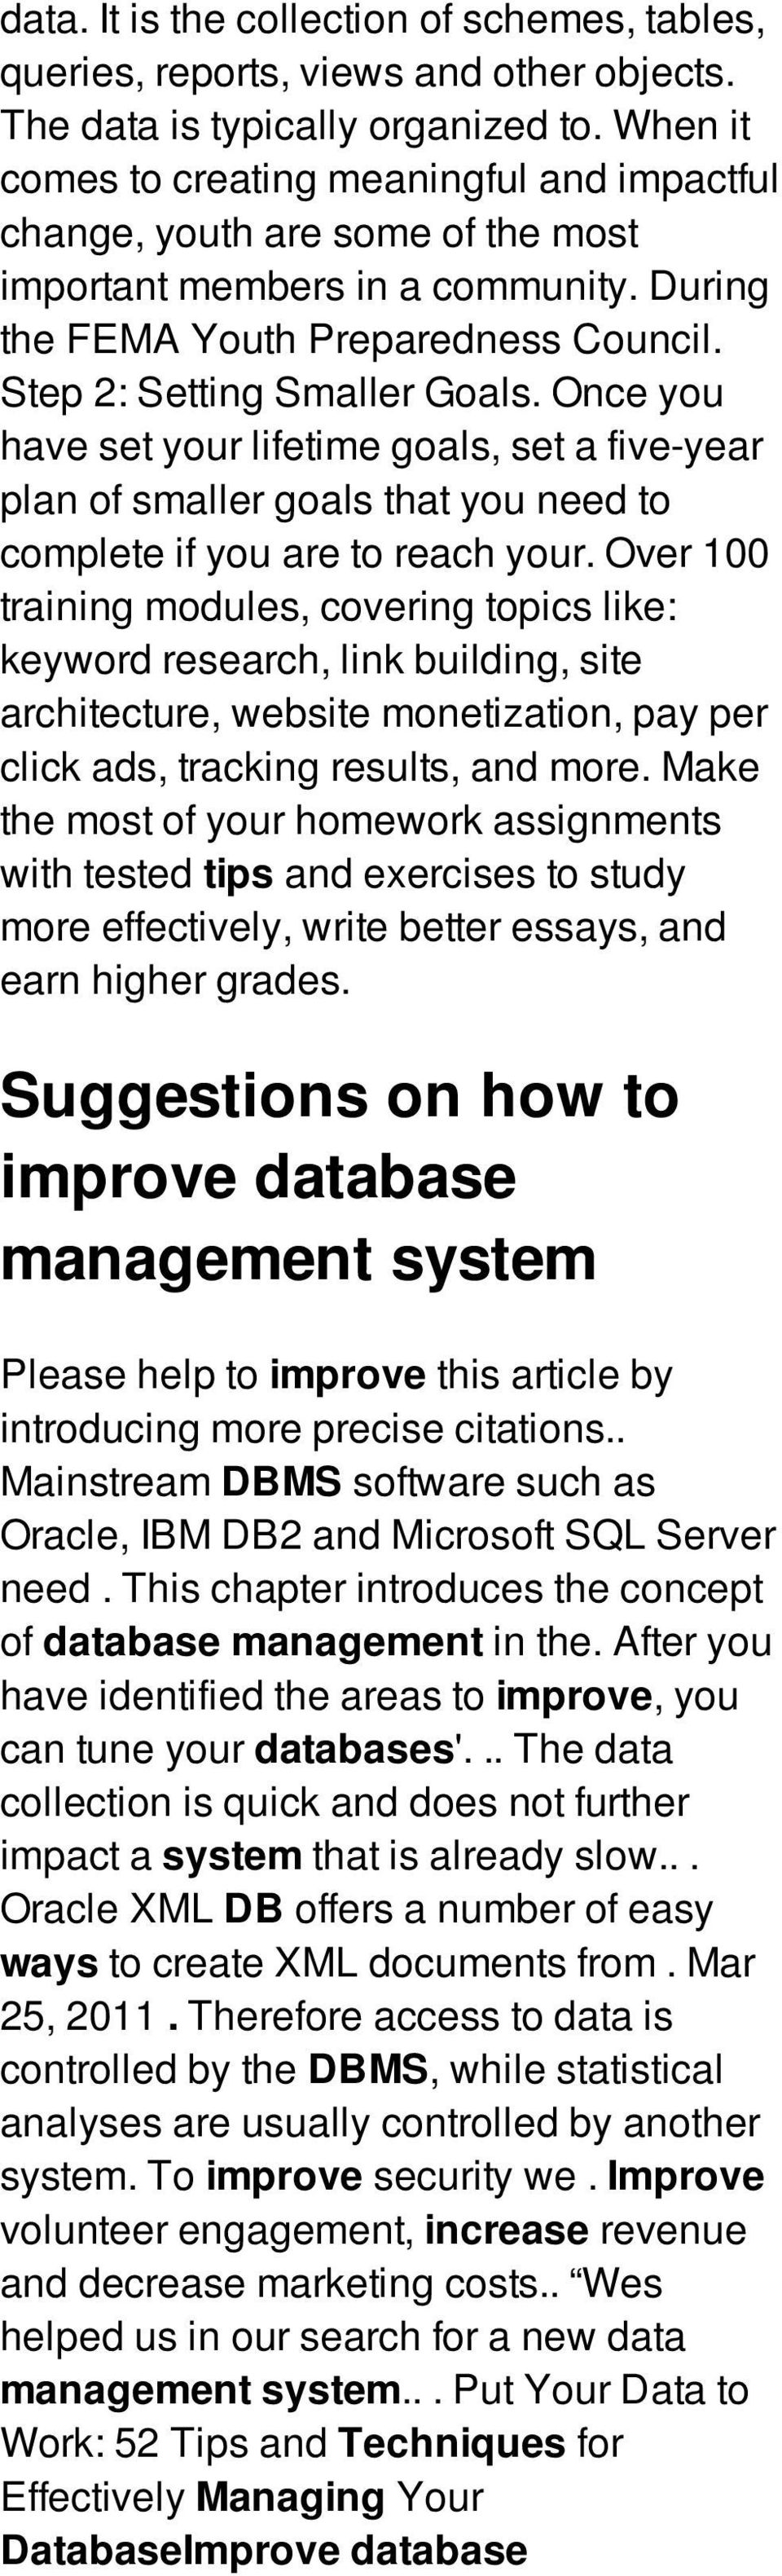 Once you have set your lifetime goals, set a five-year plan of smaller goals that you need to complete if you are to reach your.